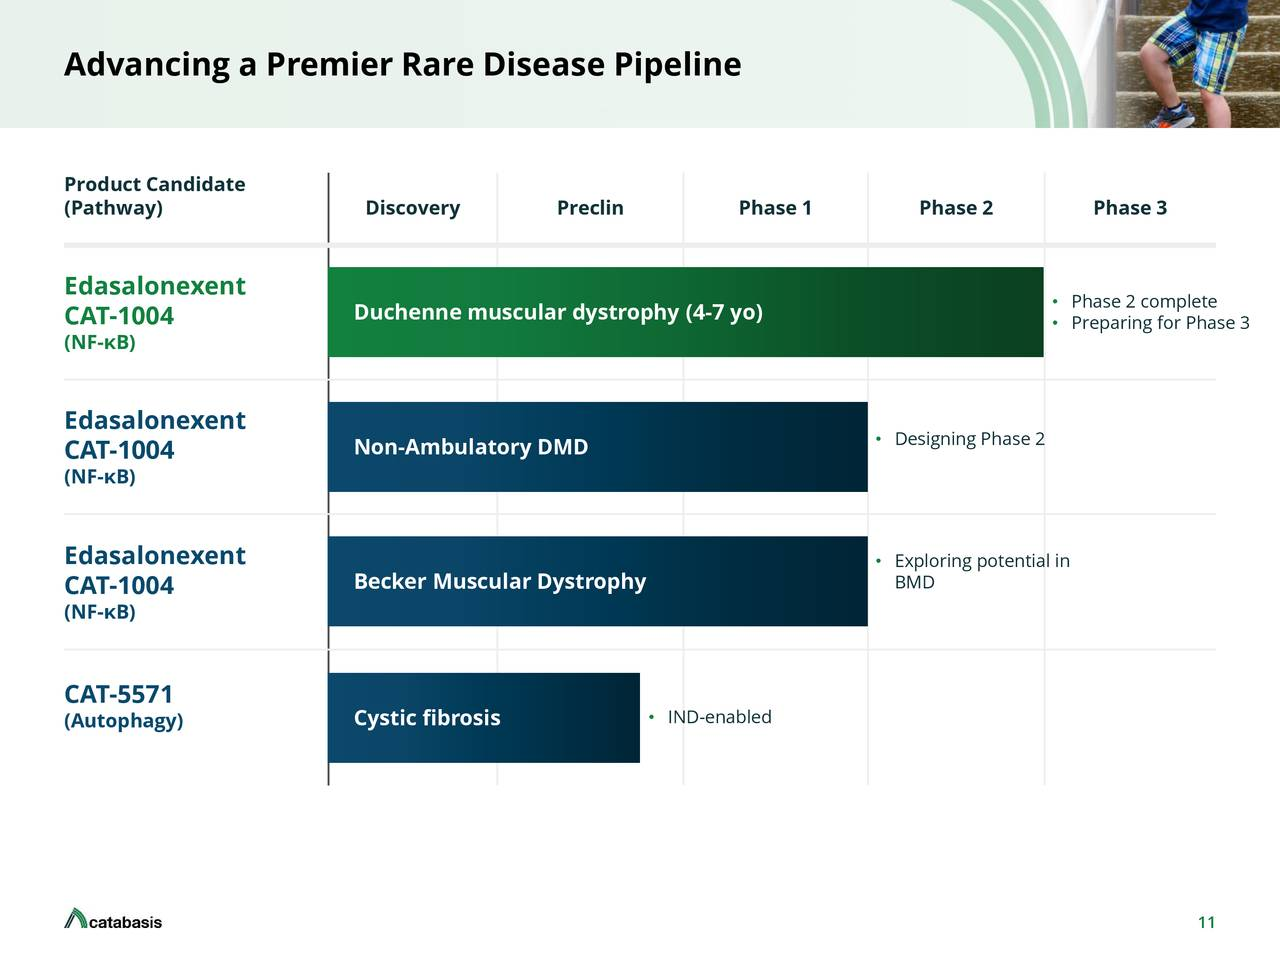 Duchenne Muscular Dystrophy Quotes Catabasis Pharmaceuticals 2018 Q1 Results Earnings